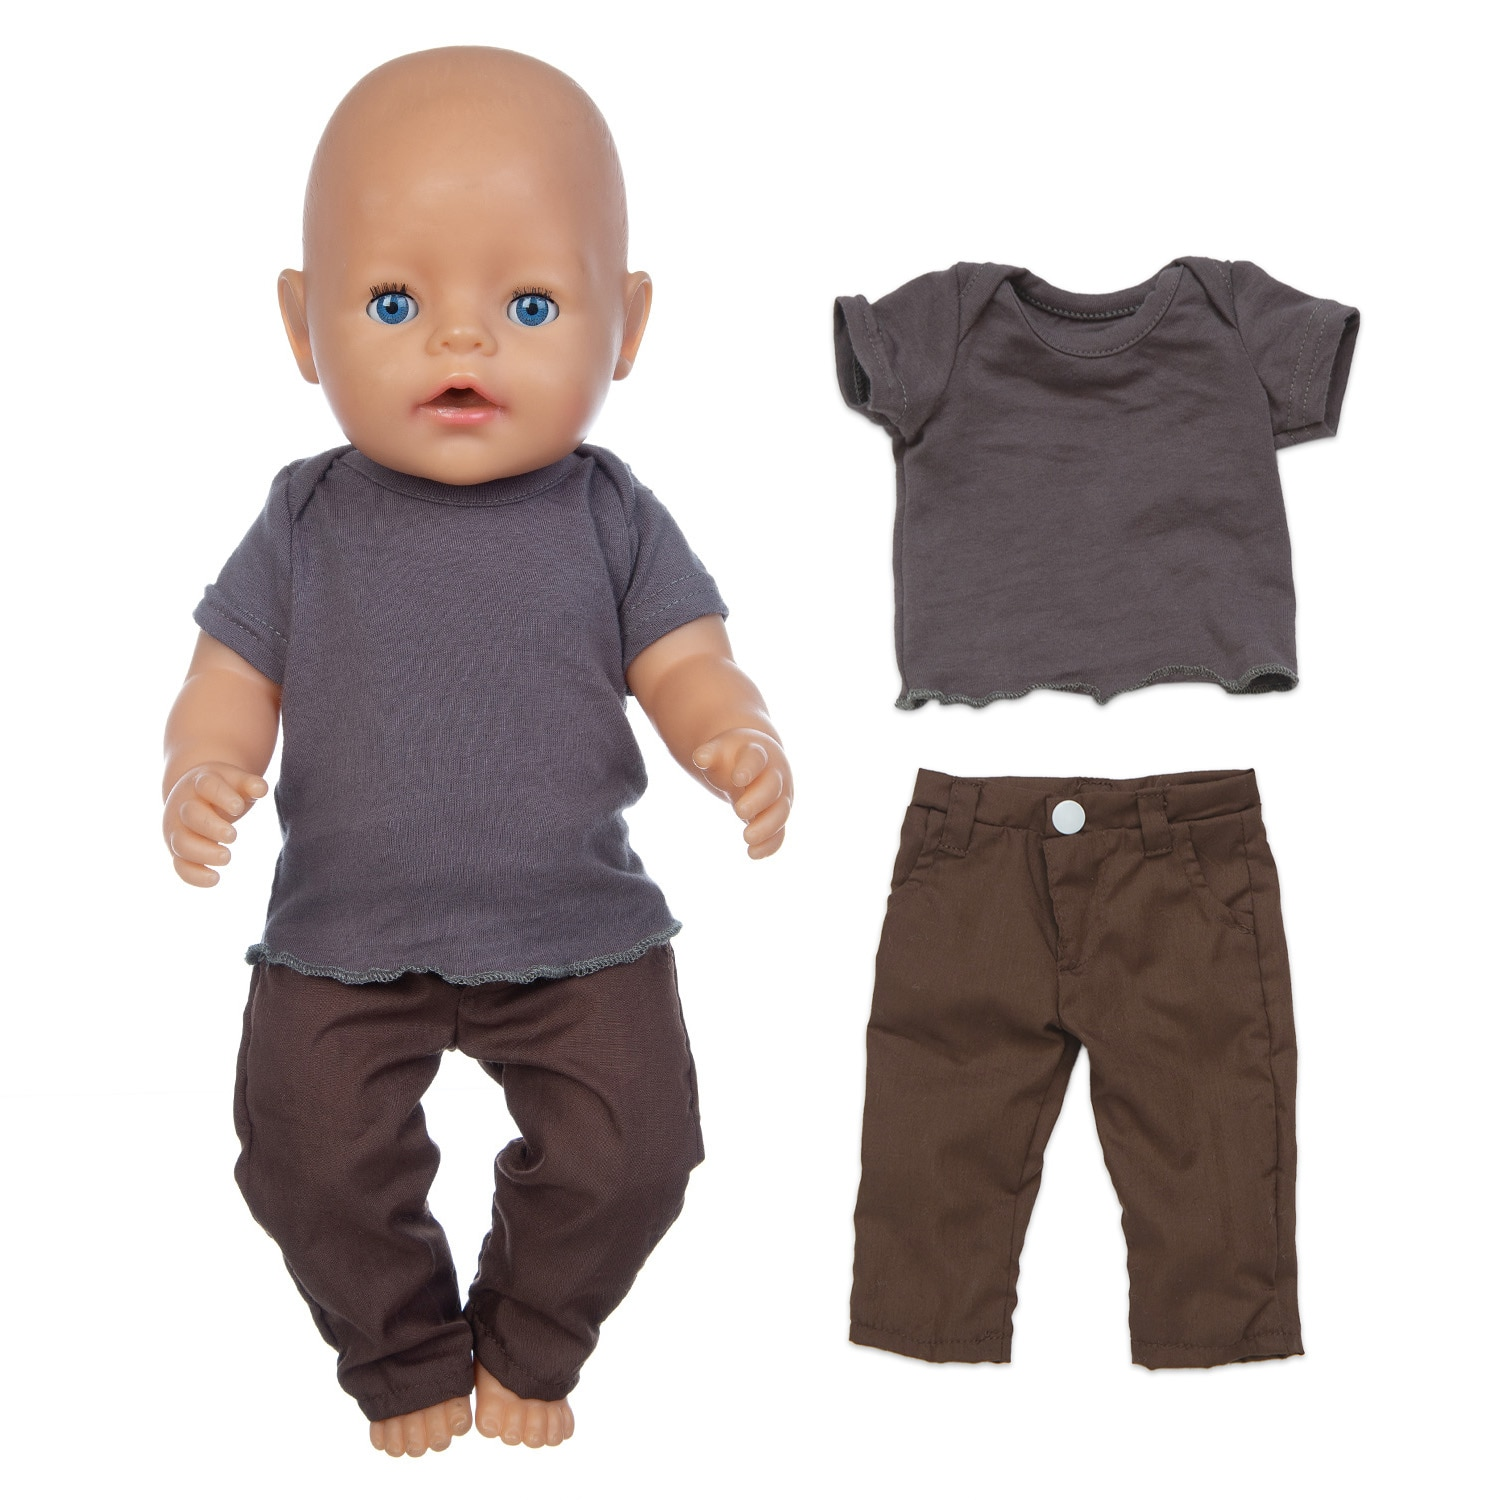 Baby New Born Fit 18 inch 43cm Doll Clothes Accessories Black Shirt Gray Pants Clothes For Baby Birthday Gift недорого